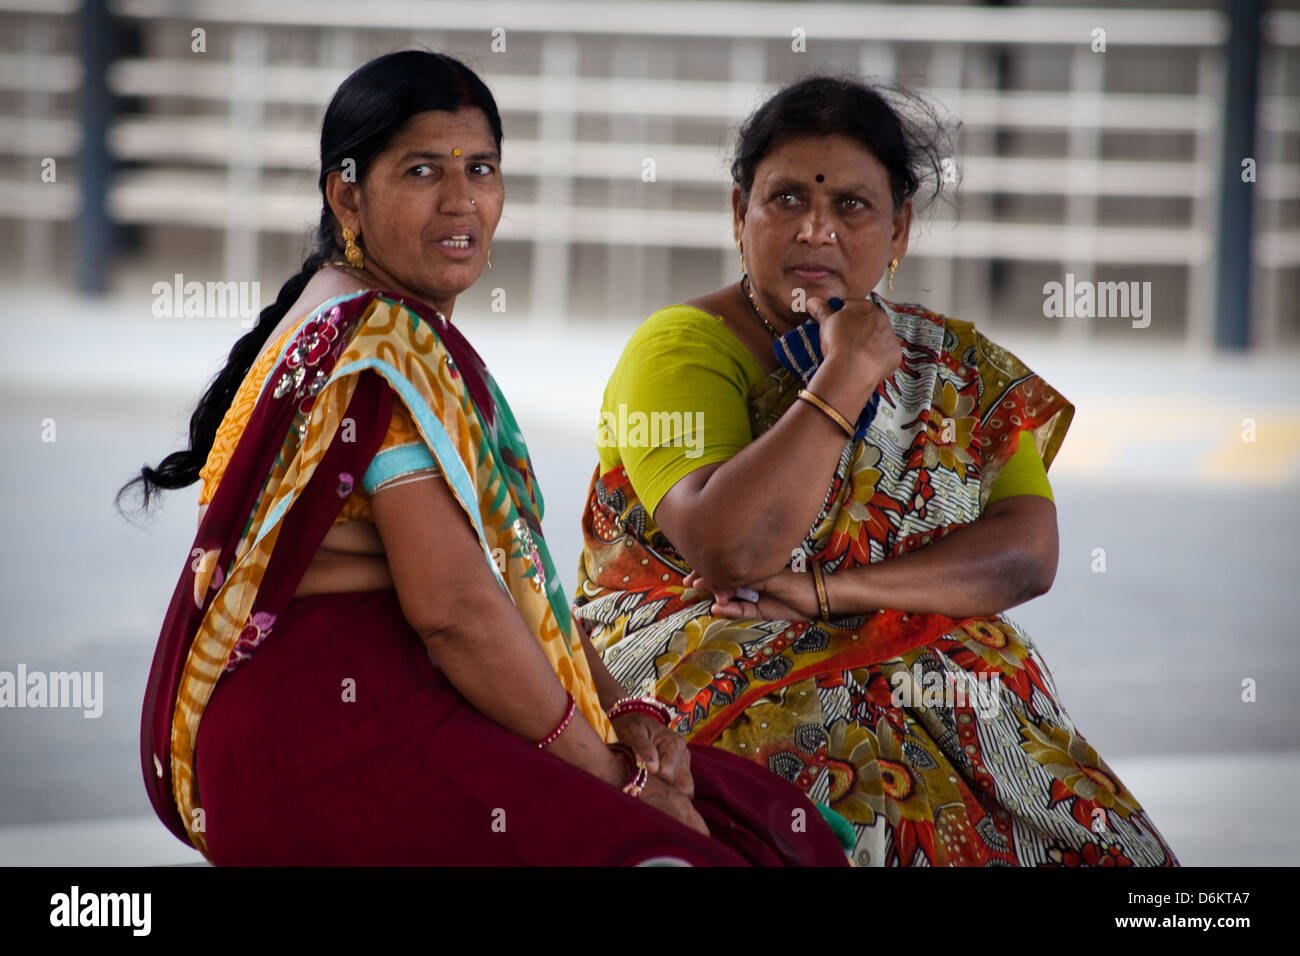 Indian women chatting, Ahmedabad - Stock Image